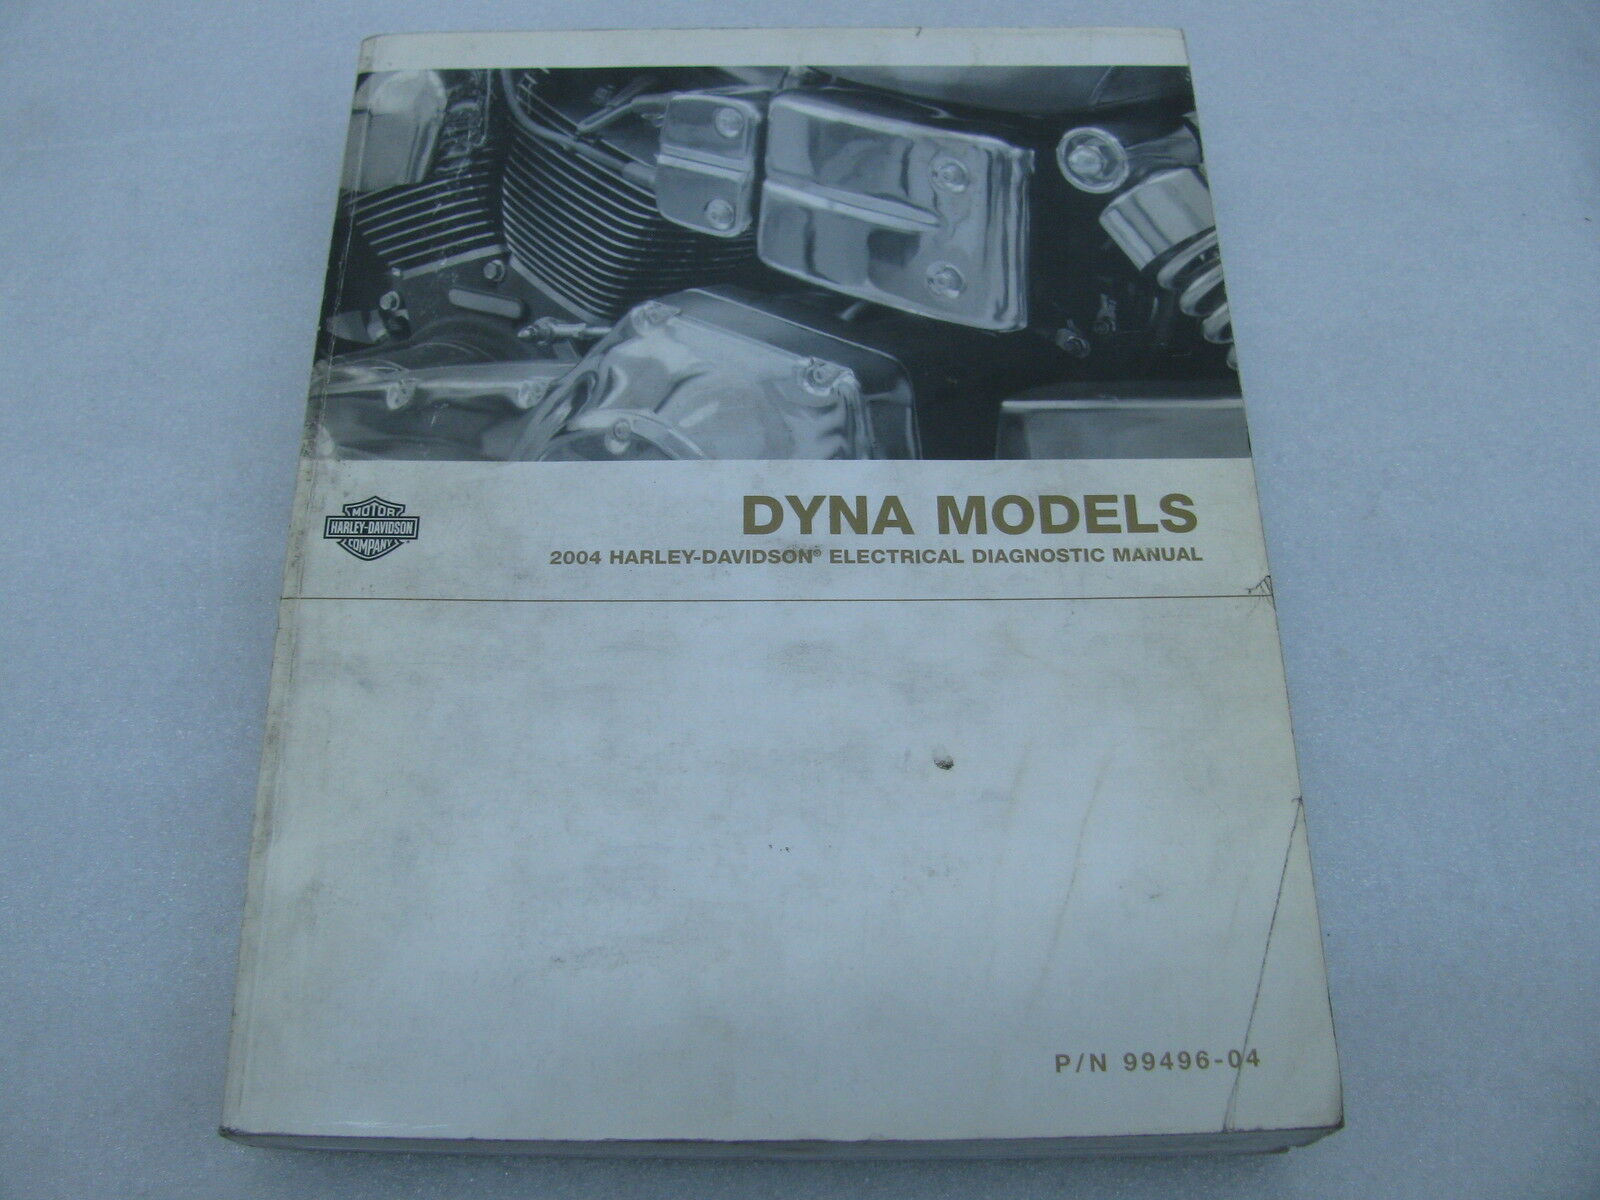 2004 Harley Davidson Dyna Electrical Diagnostic Manual Catalog Book  99496-04 1 of 2Only 1 available ...